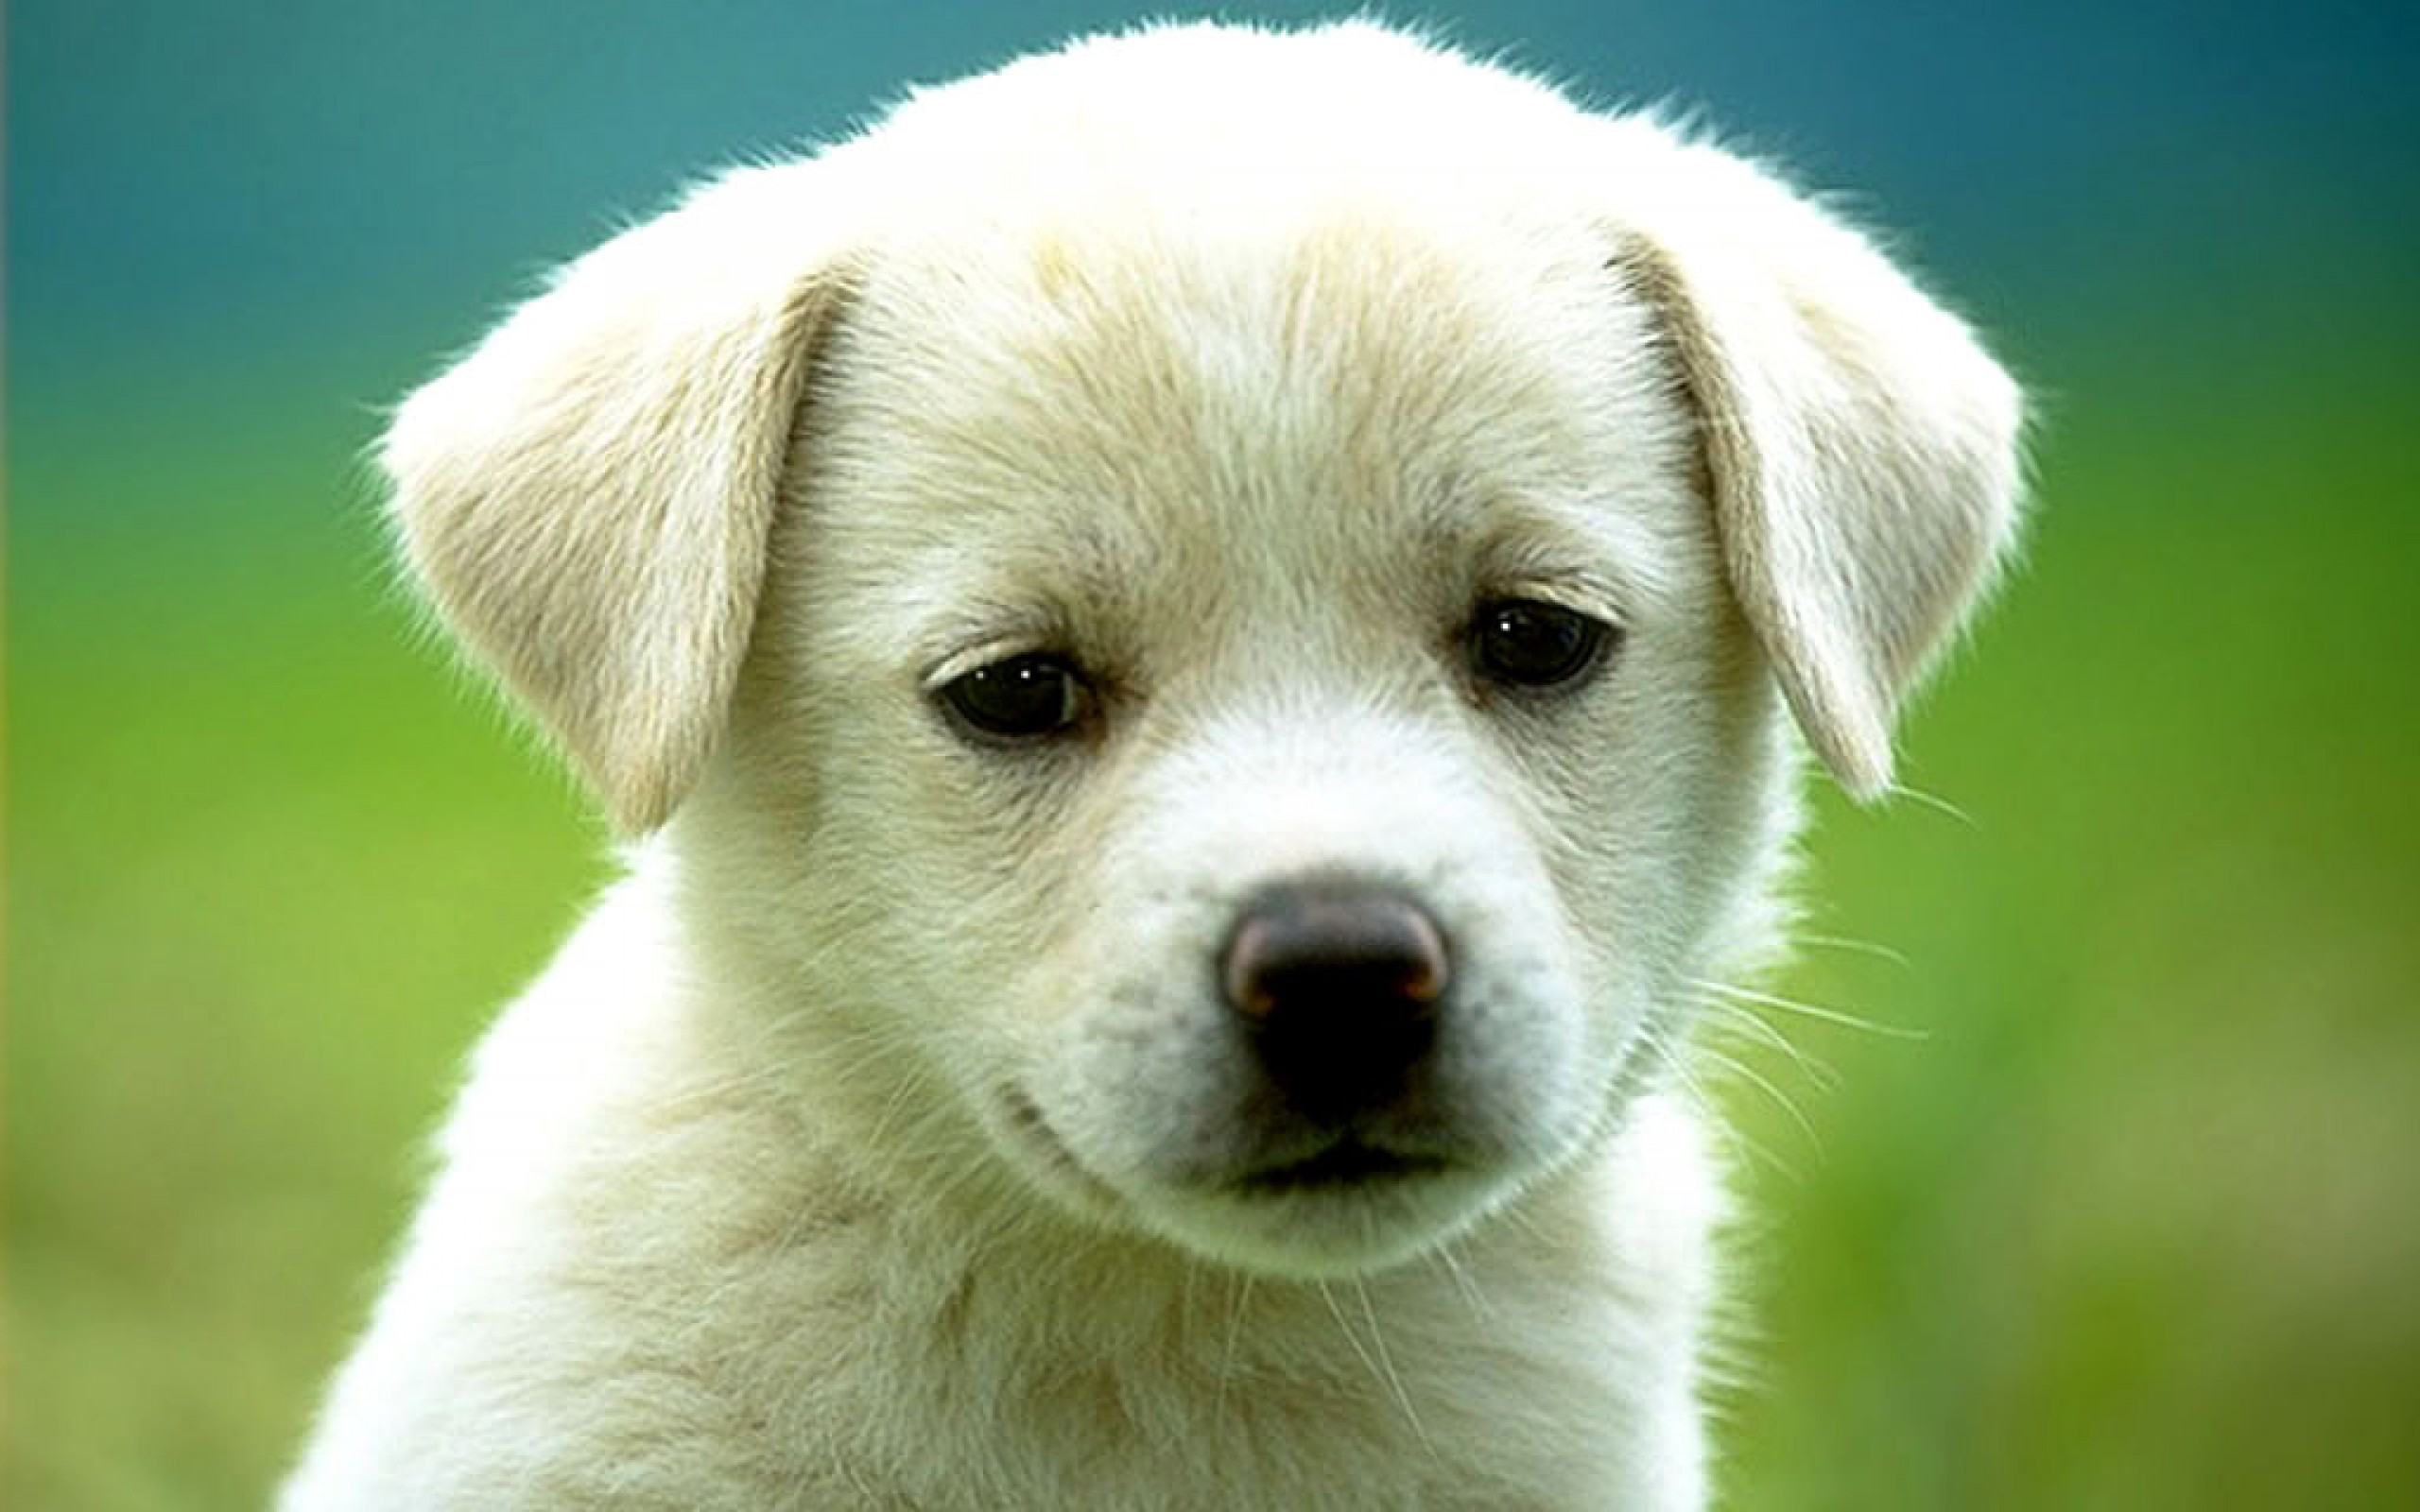 White Puppy Wallpaper High Definition High Quality Widescreen